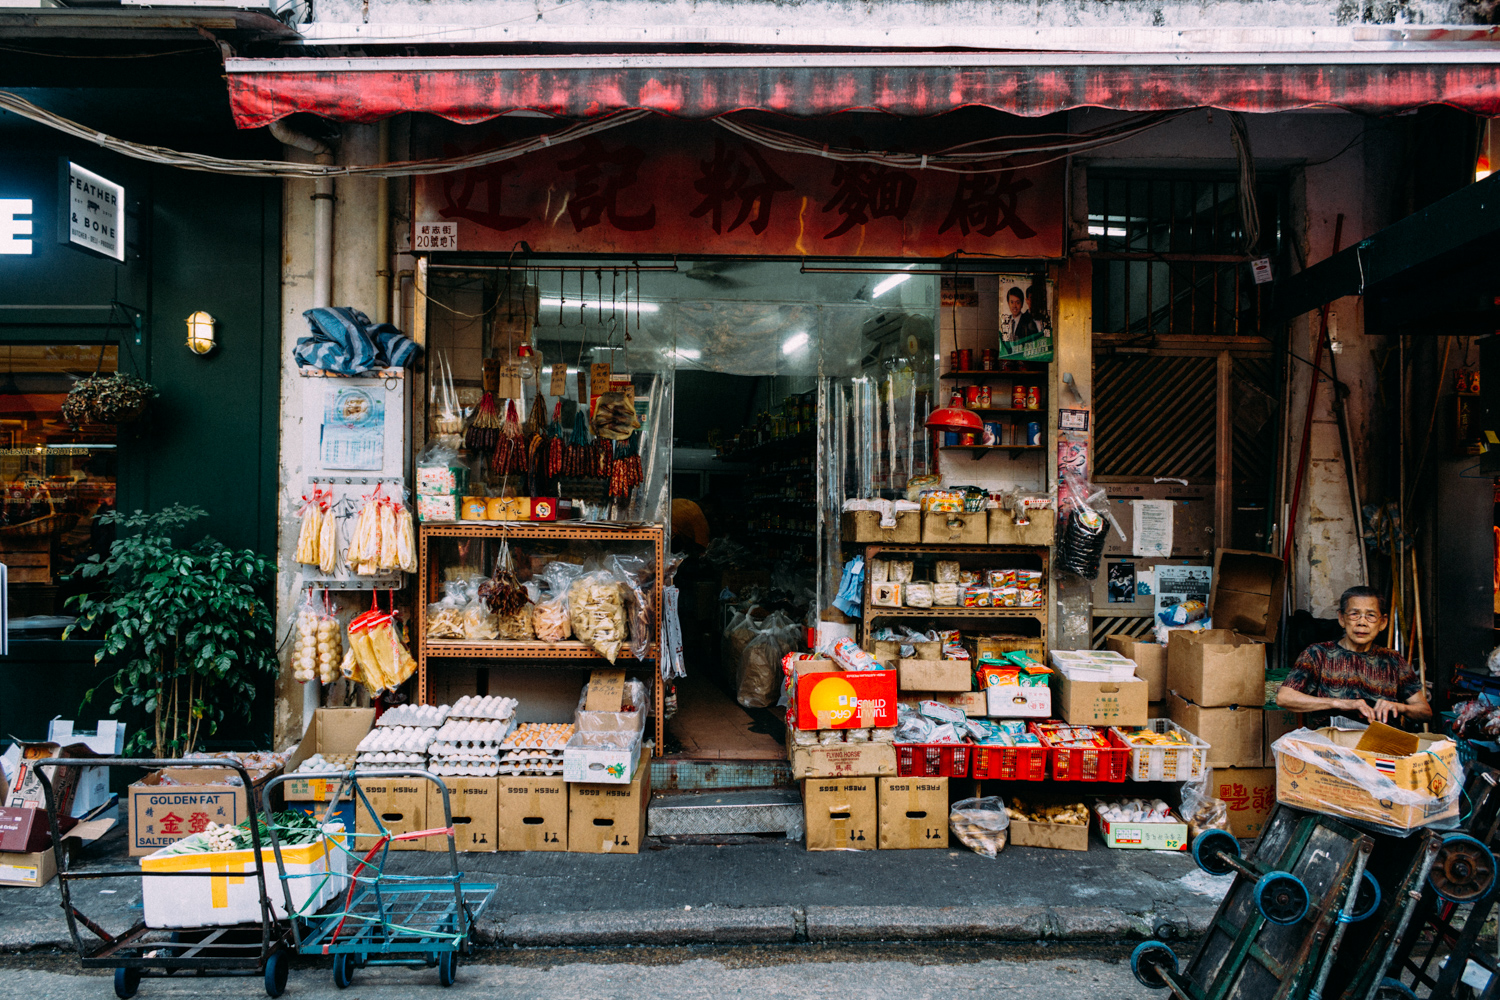 Hong Kong favorite photos | The Stopover